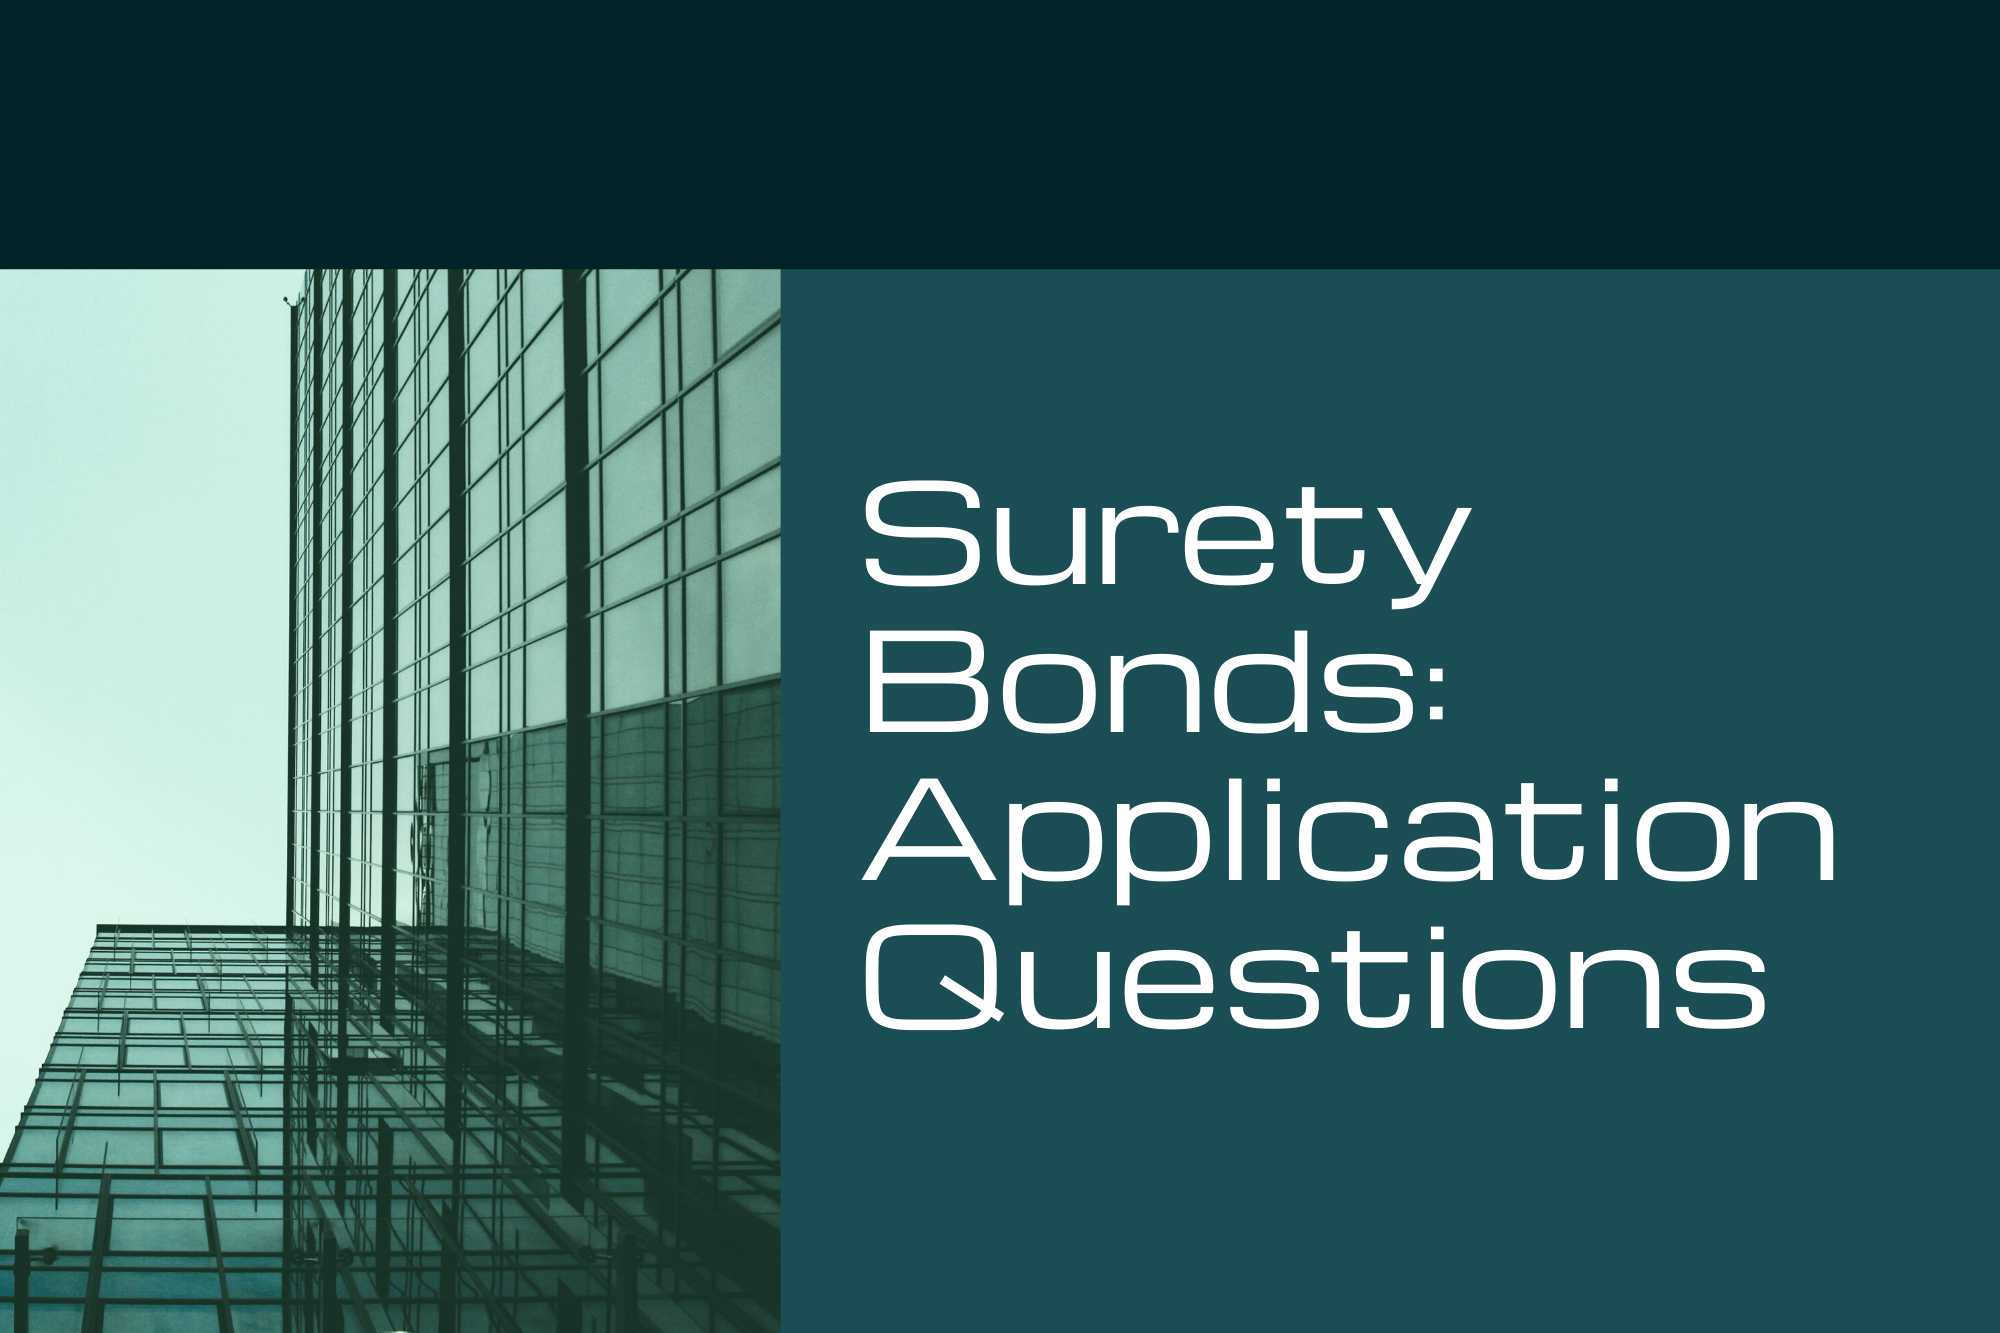 surety bonds - what is the process to get a surety bond - building interior in blue green background